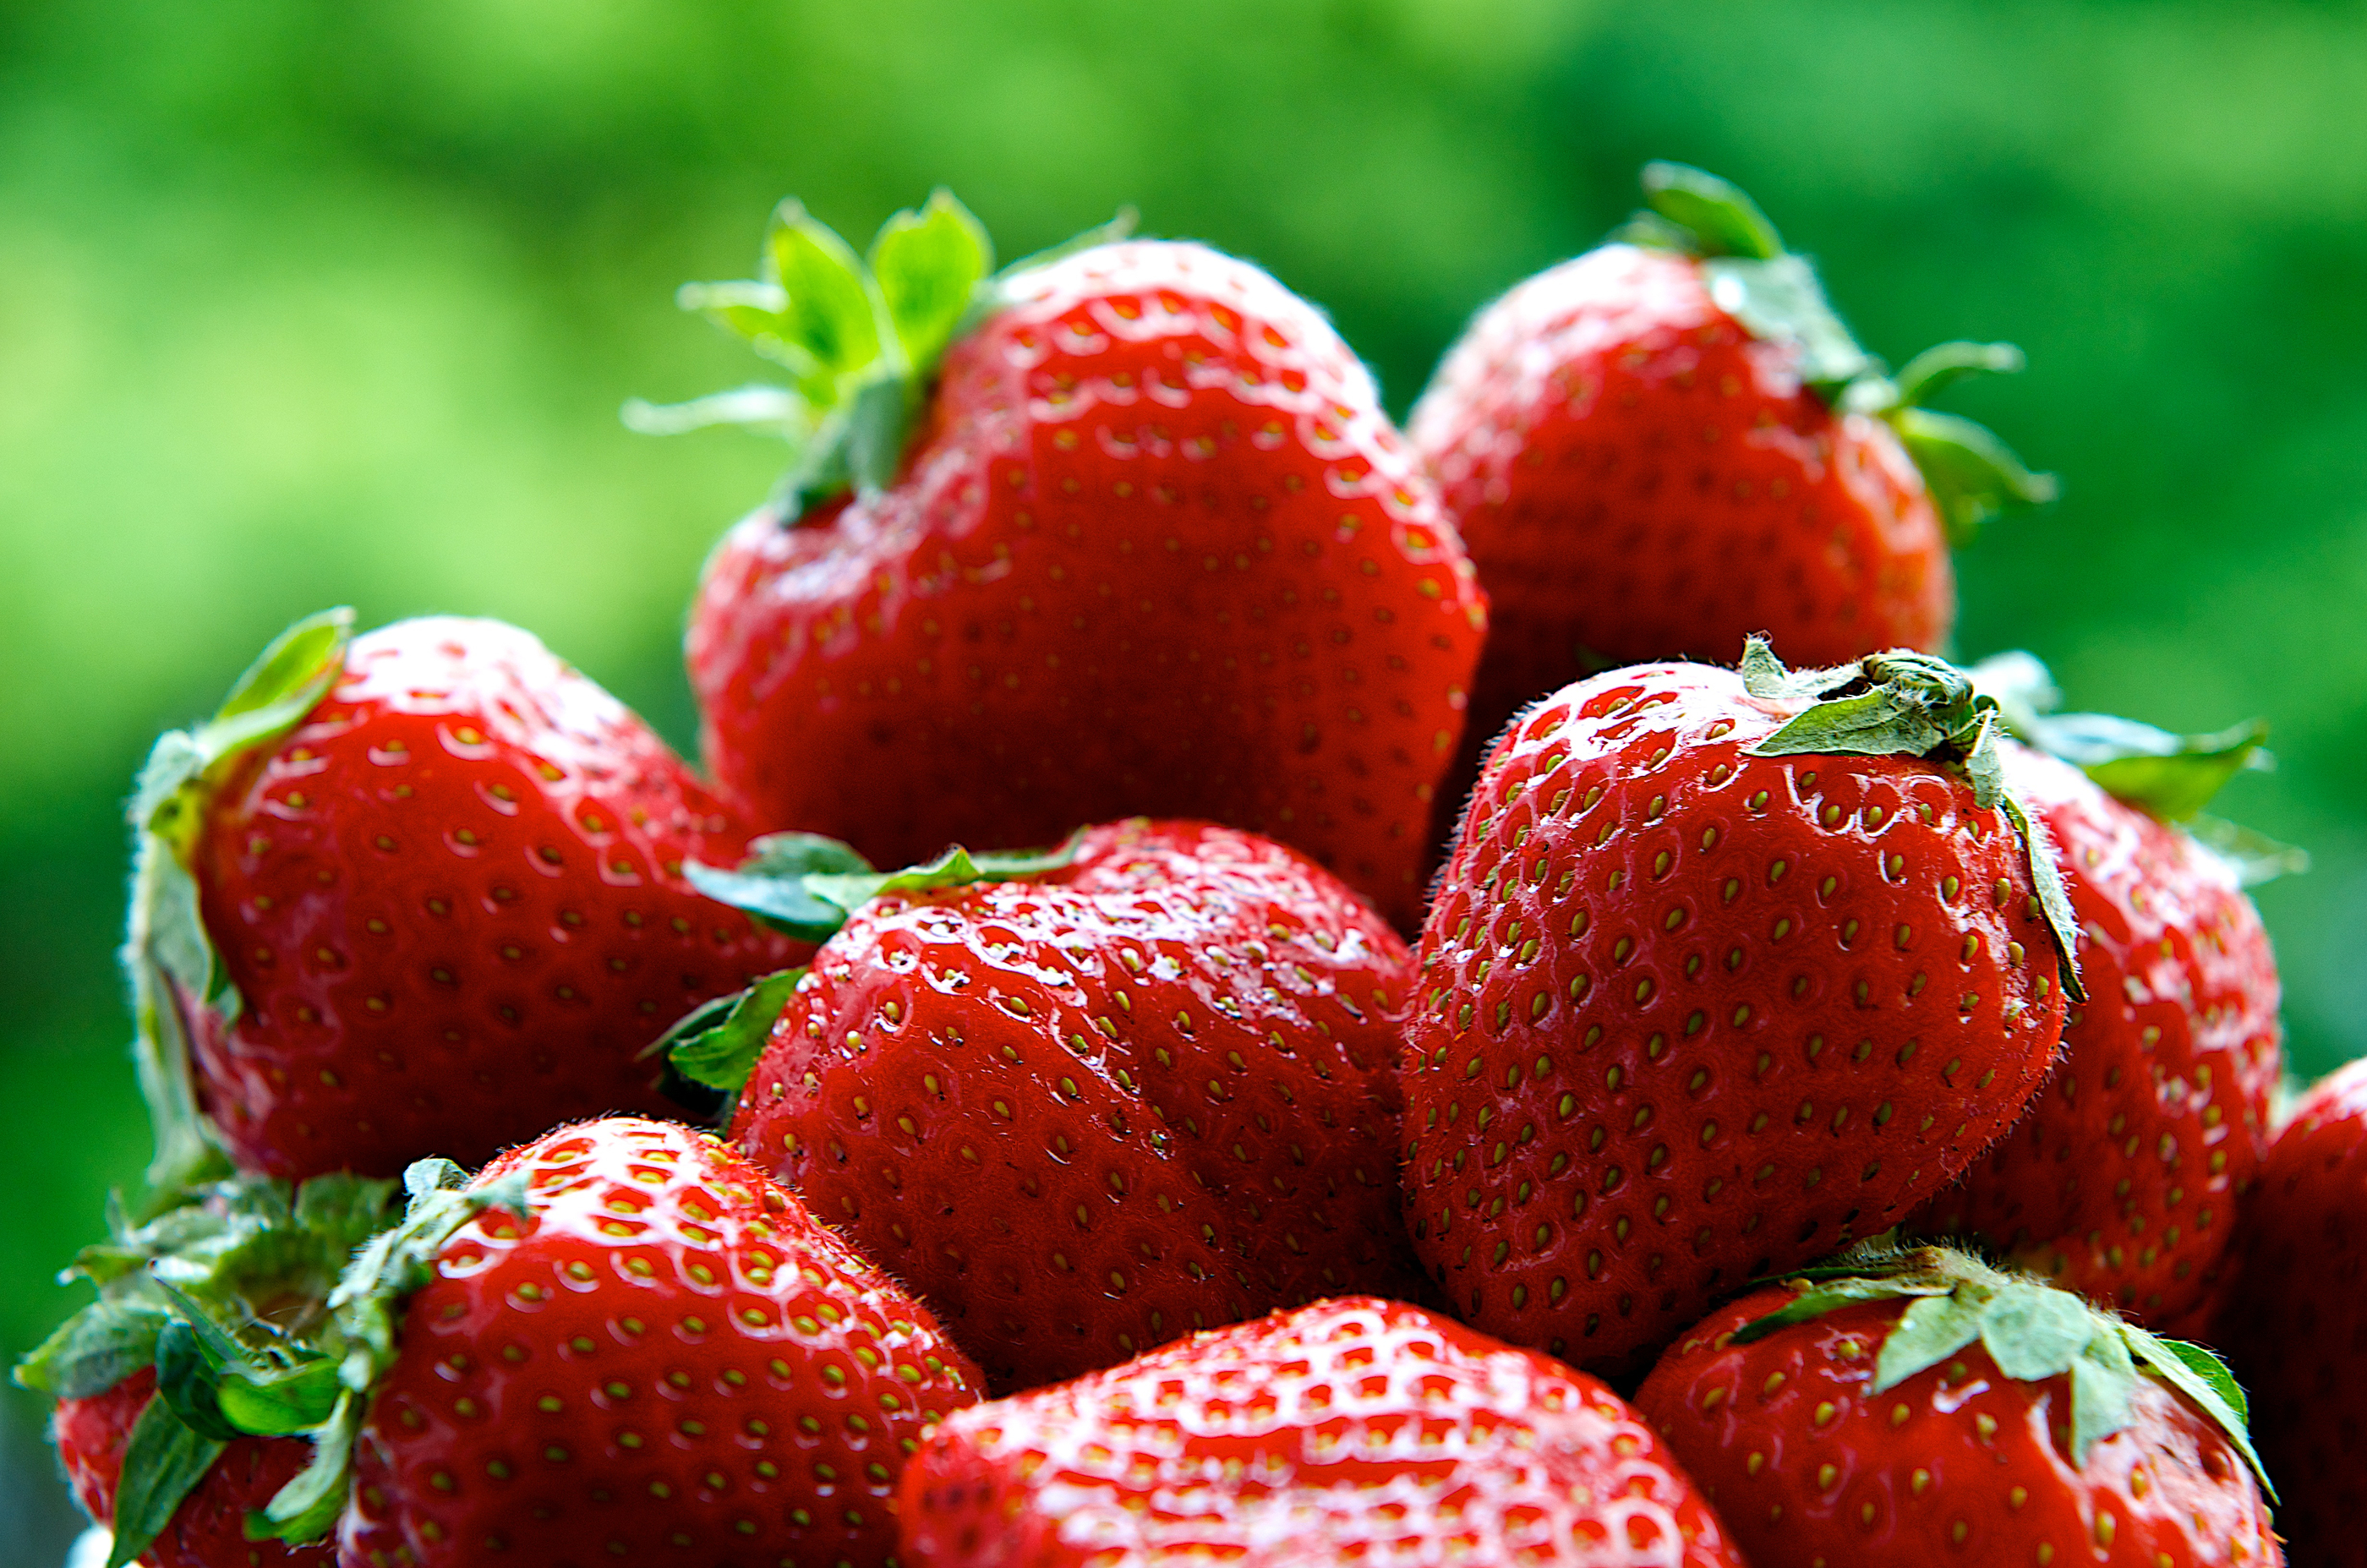 Fresh strawberries on summer with green background, strawberries,seasonal fruits